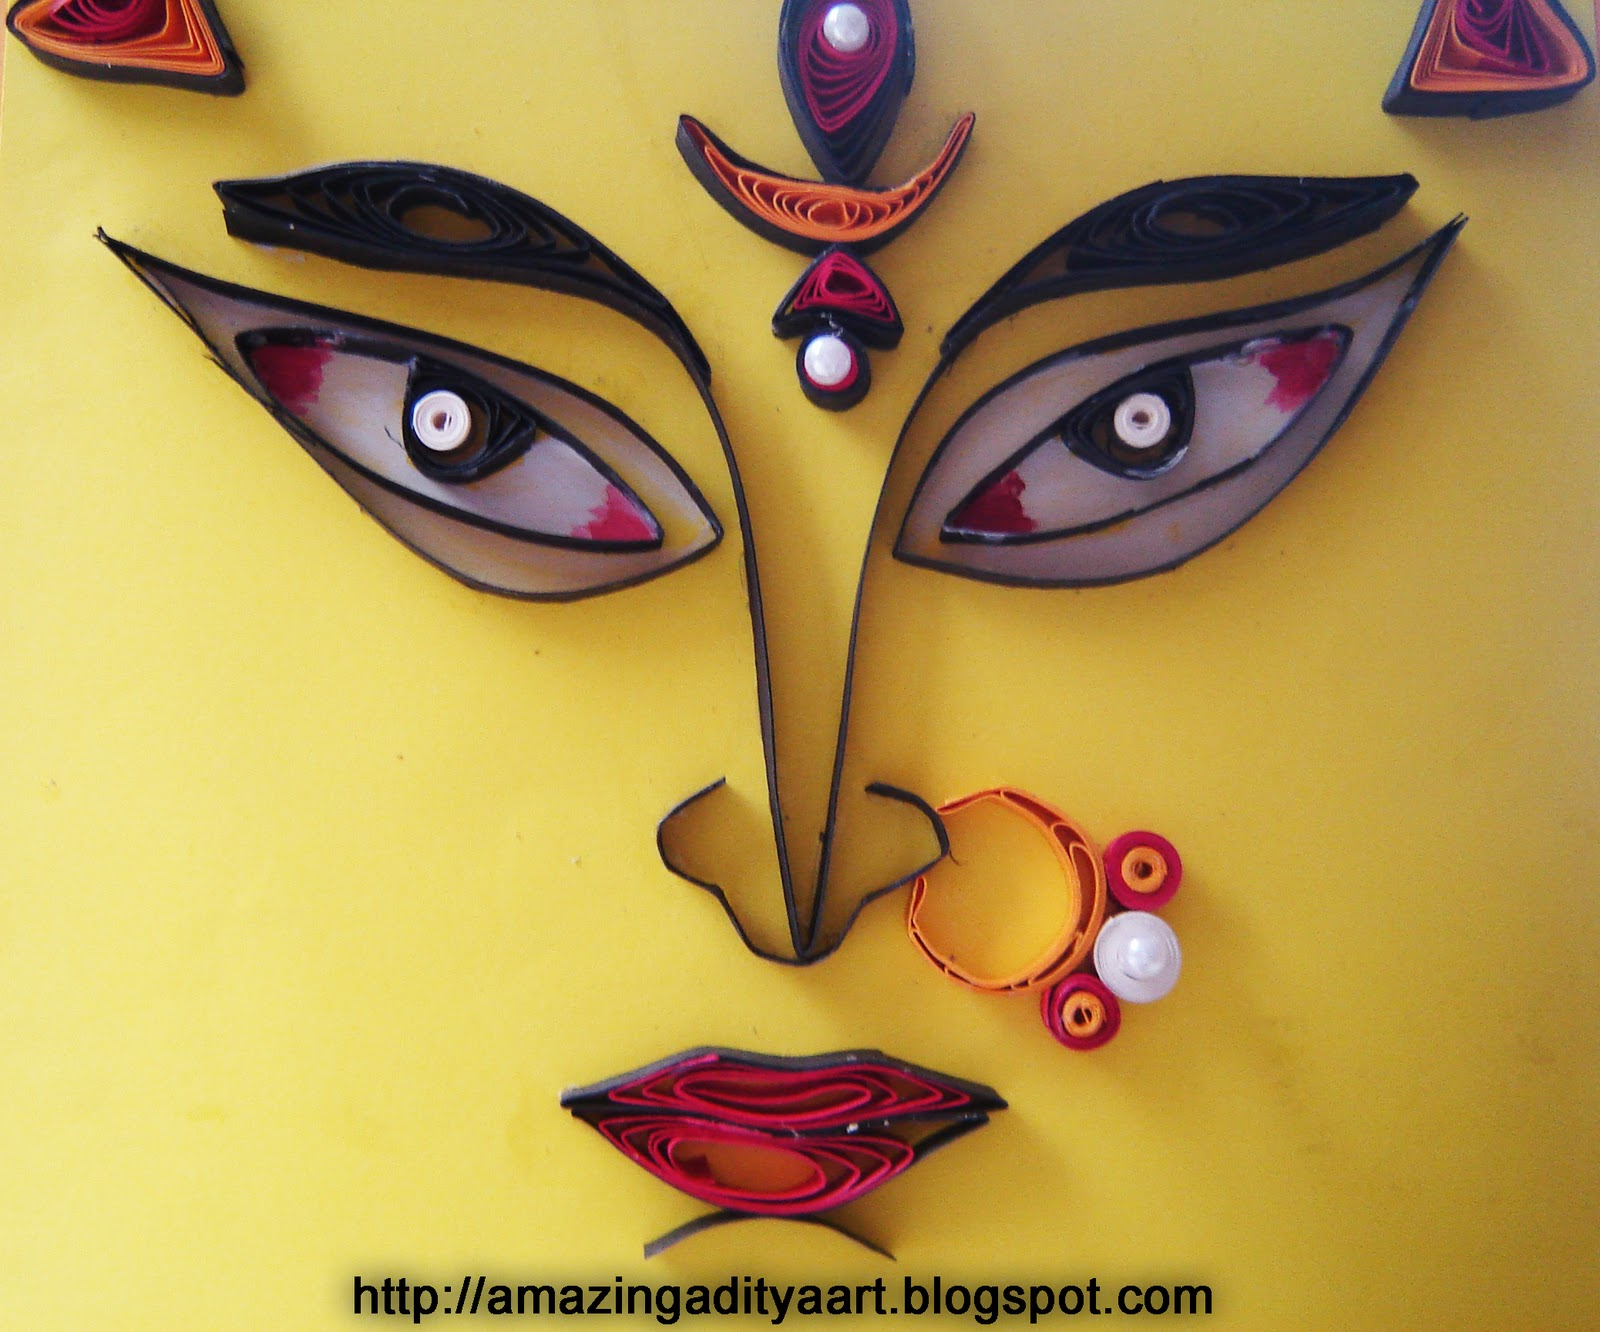 Amazing quilling art n paintings adis creations durga puja card cord no adi f 104 kristyandbryce Image collections